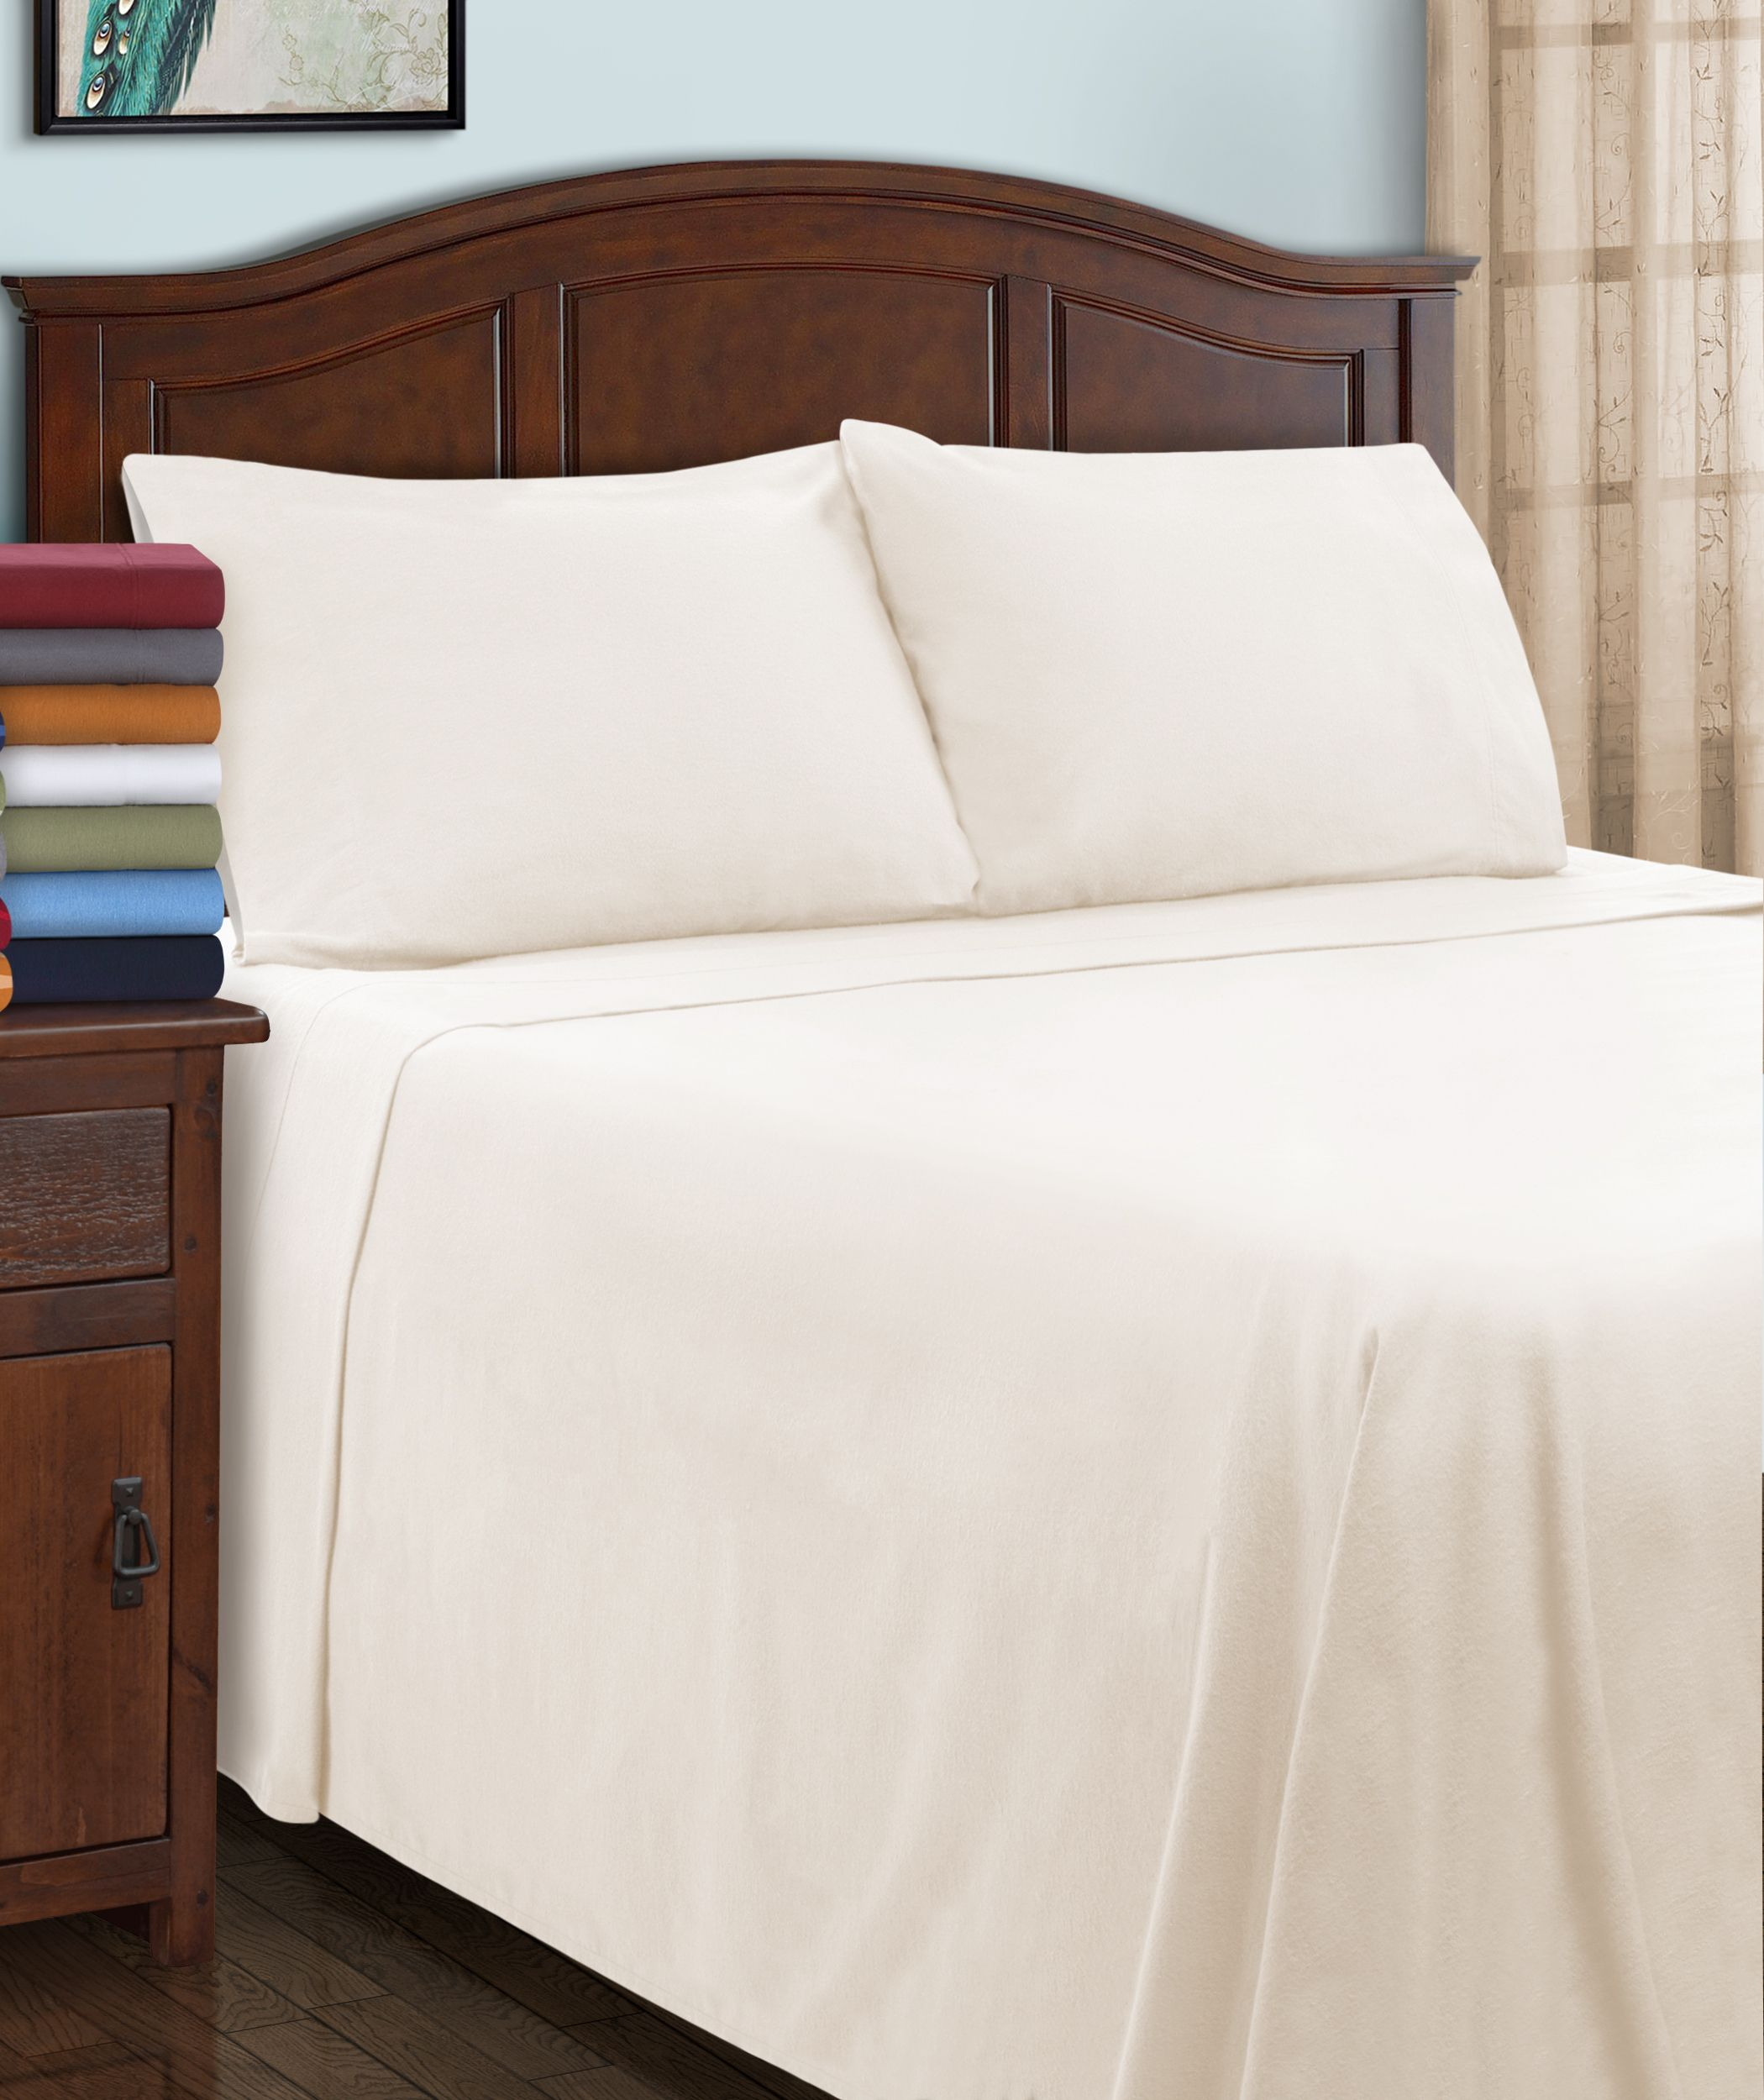 california king fitted sheet cotton